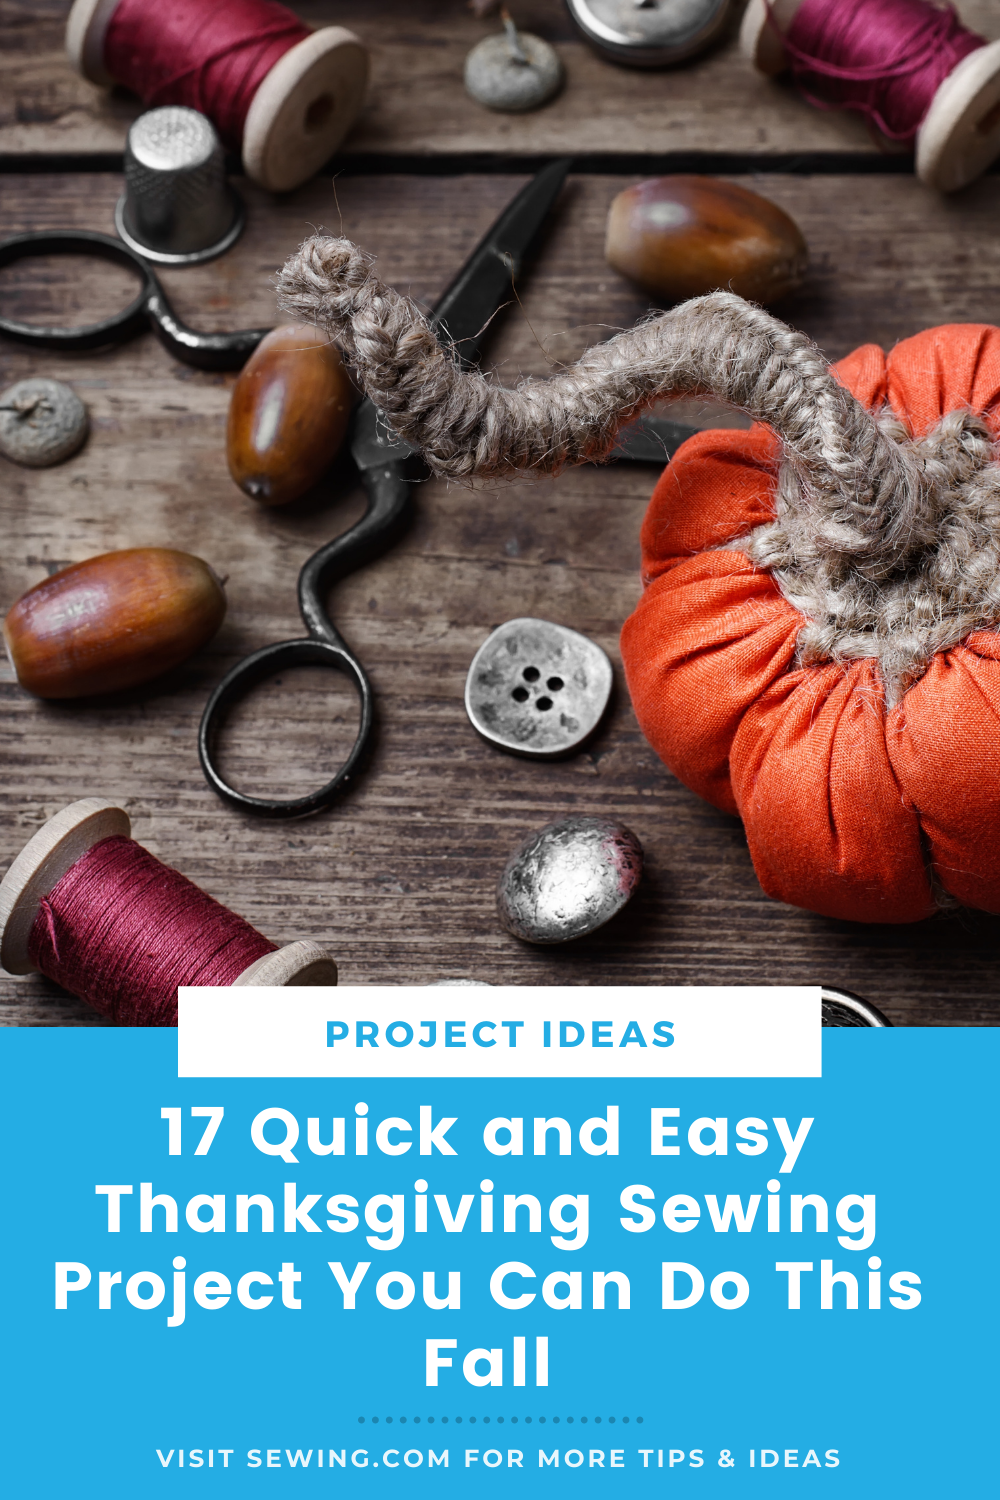 placard | 17 Quick and Easy Thanksgiving Sewing Project You Can Do This Fall